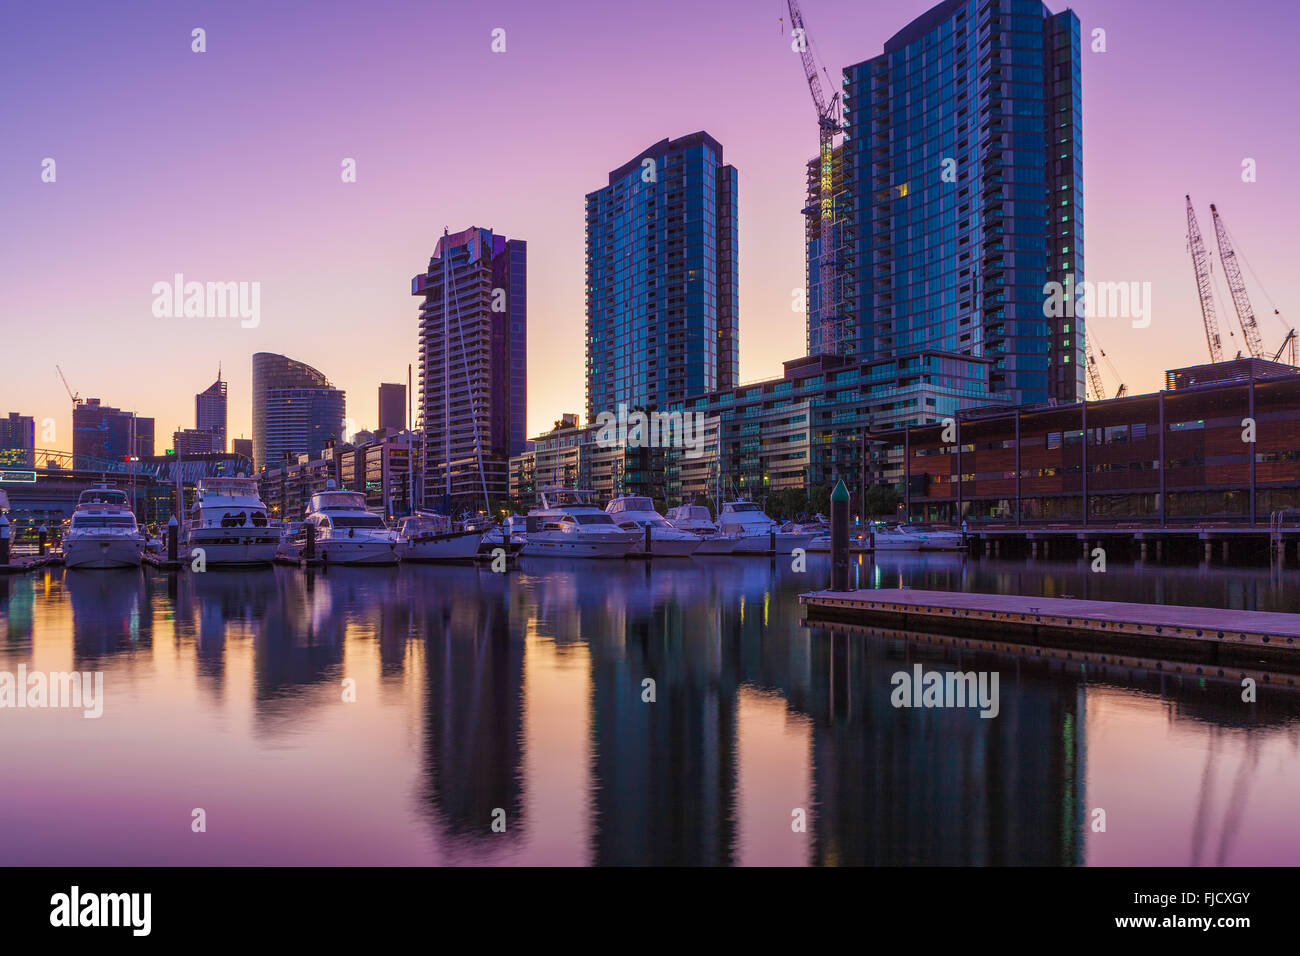 Docklands, Melbourne high rise residential buildings and moored yachts at dawn - Stock Image